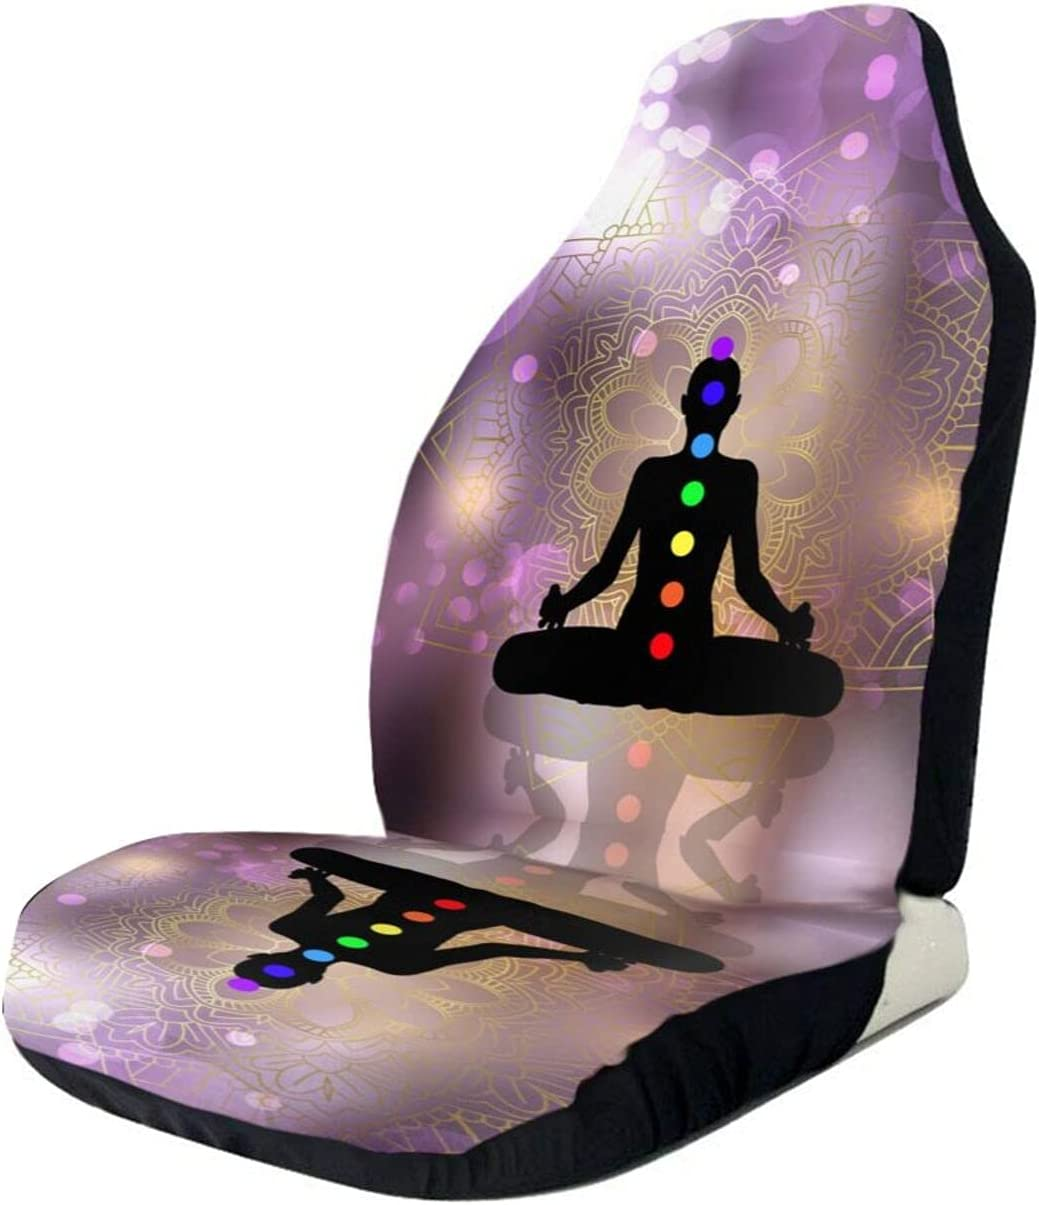 Chakra Silhouette of Female Doing Import Seat Car Cover Ranking TOP10 Front Yoga